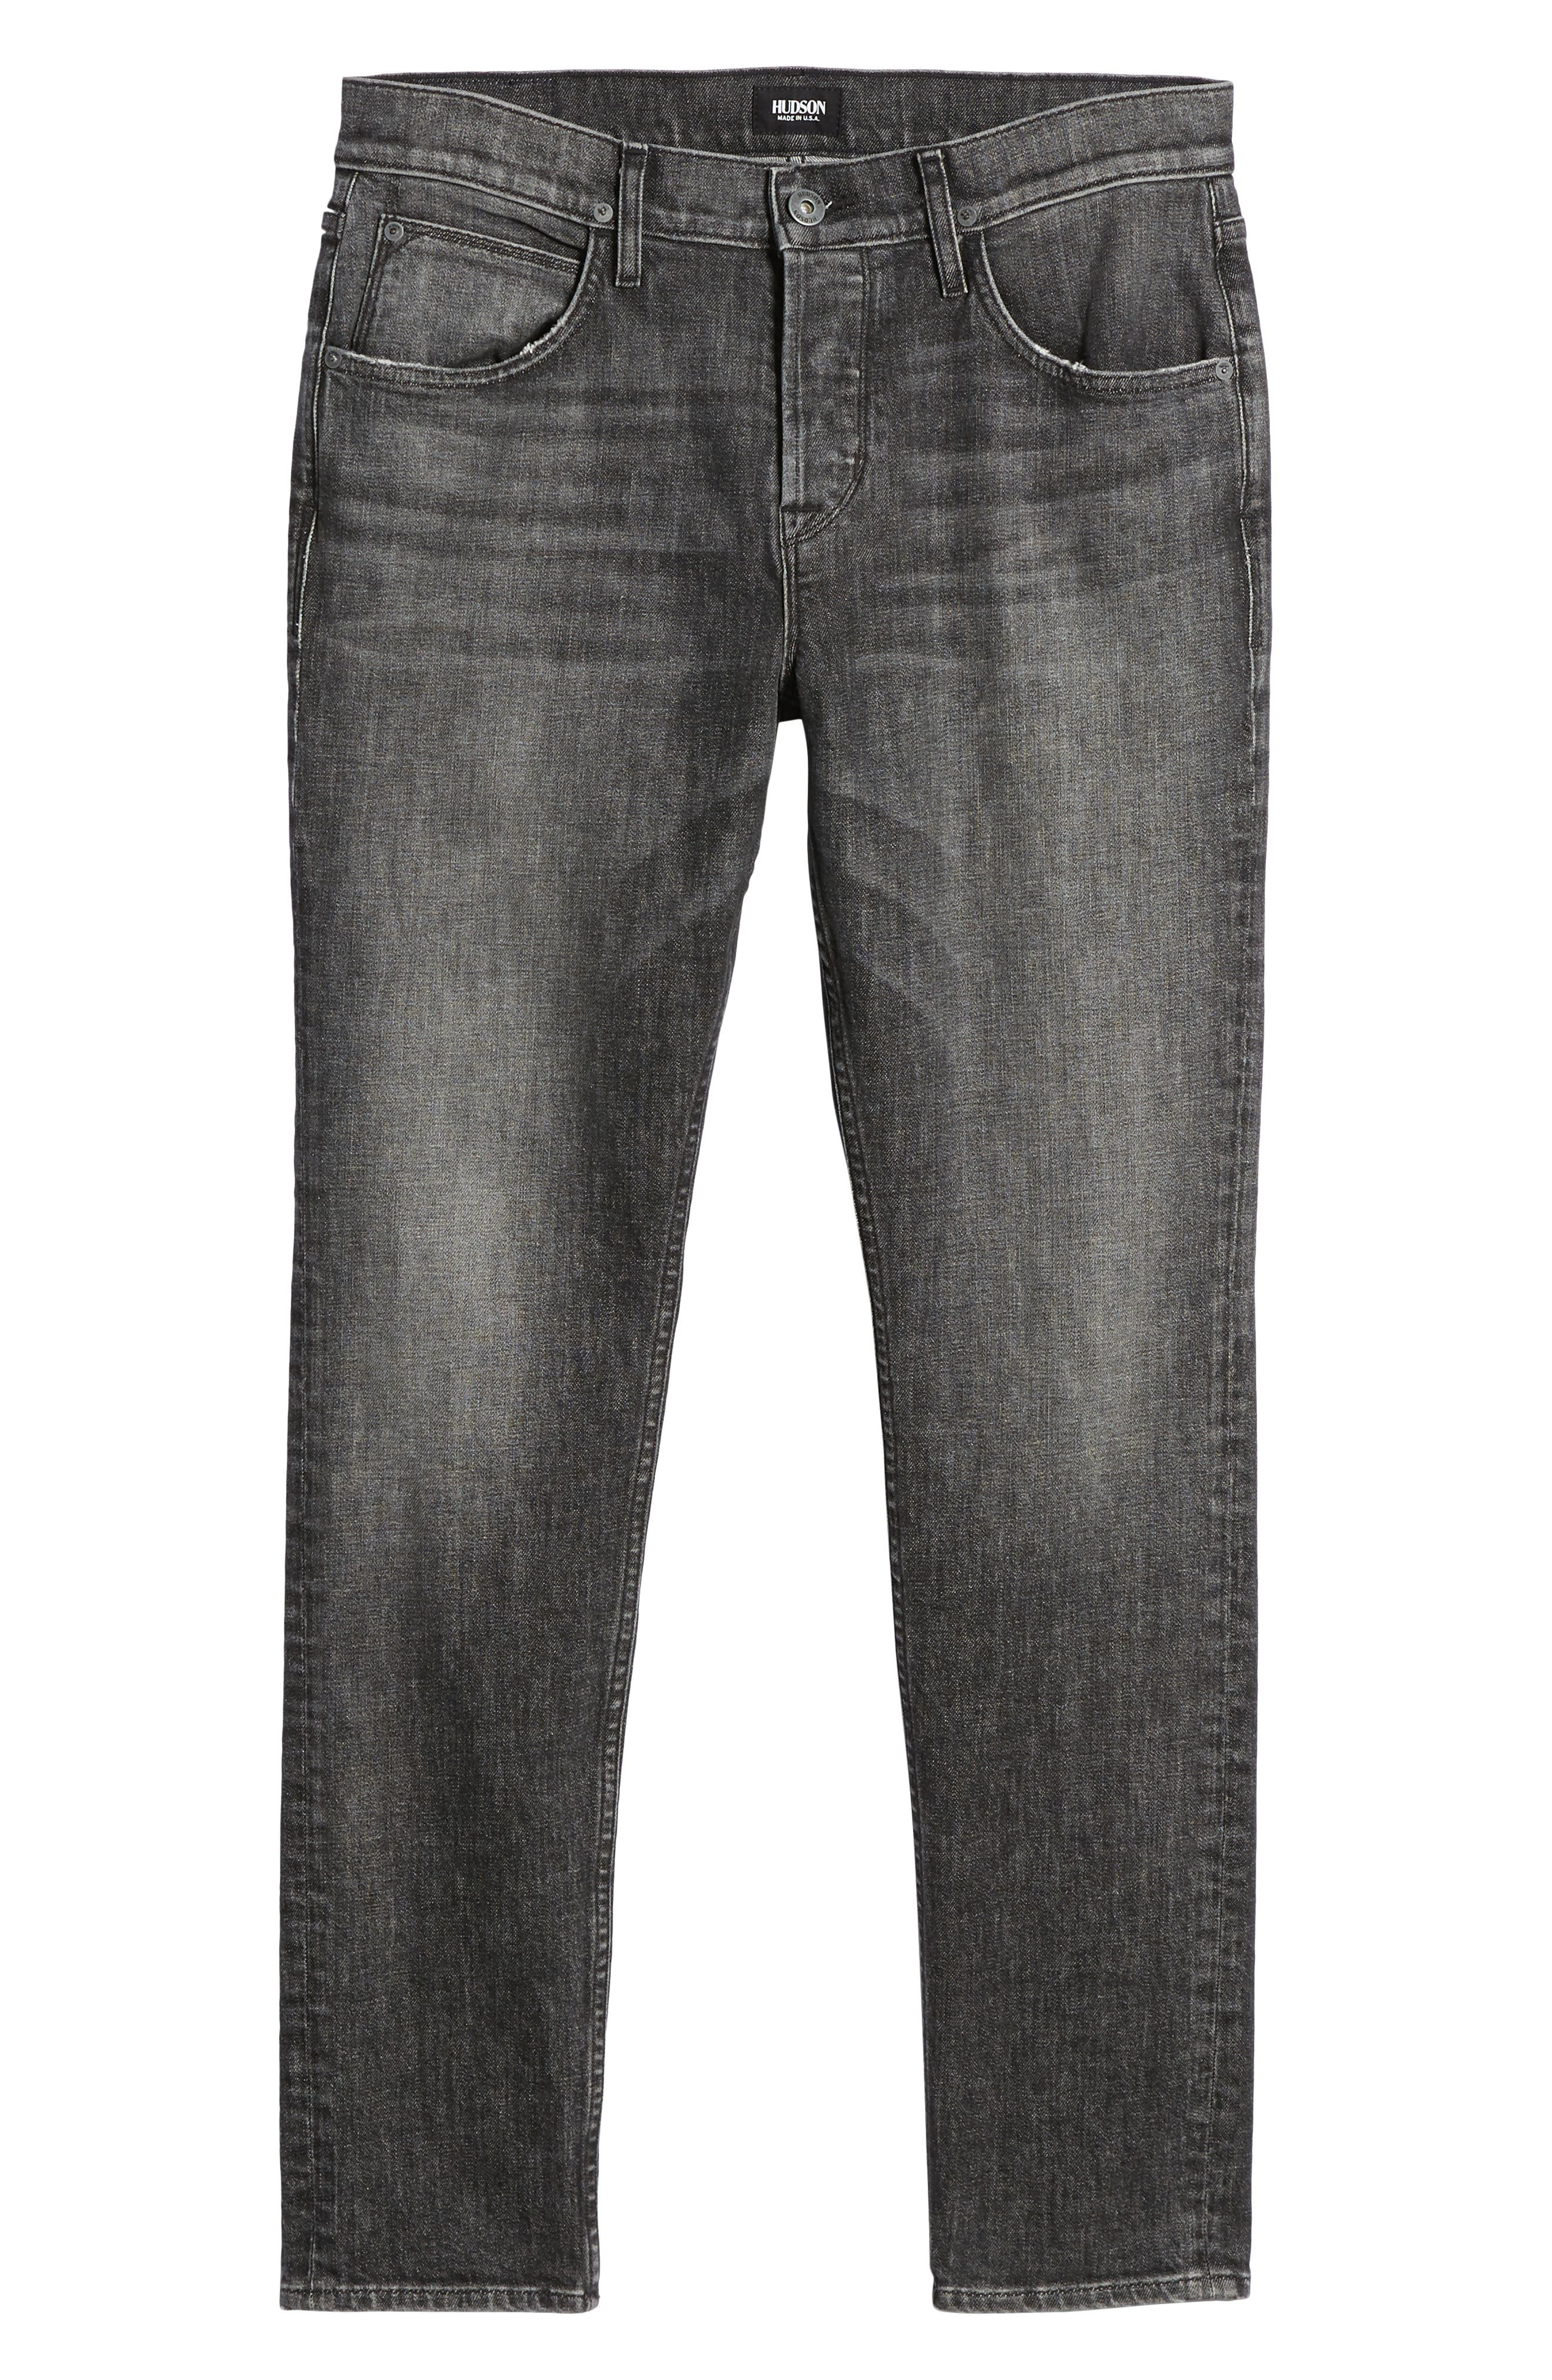 Axl Skinny Fit Jeans,                             Alternate thumbnail 6, color,                             001